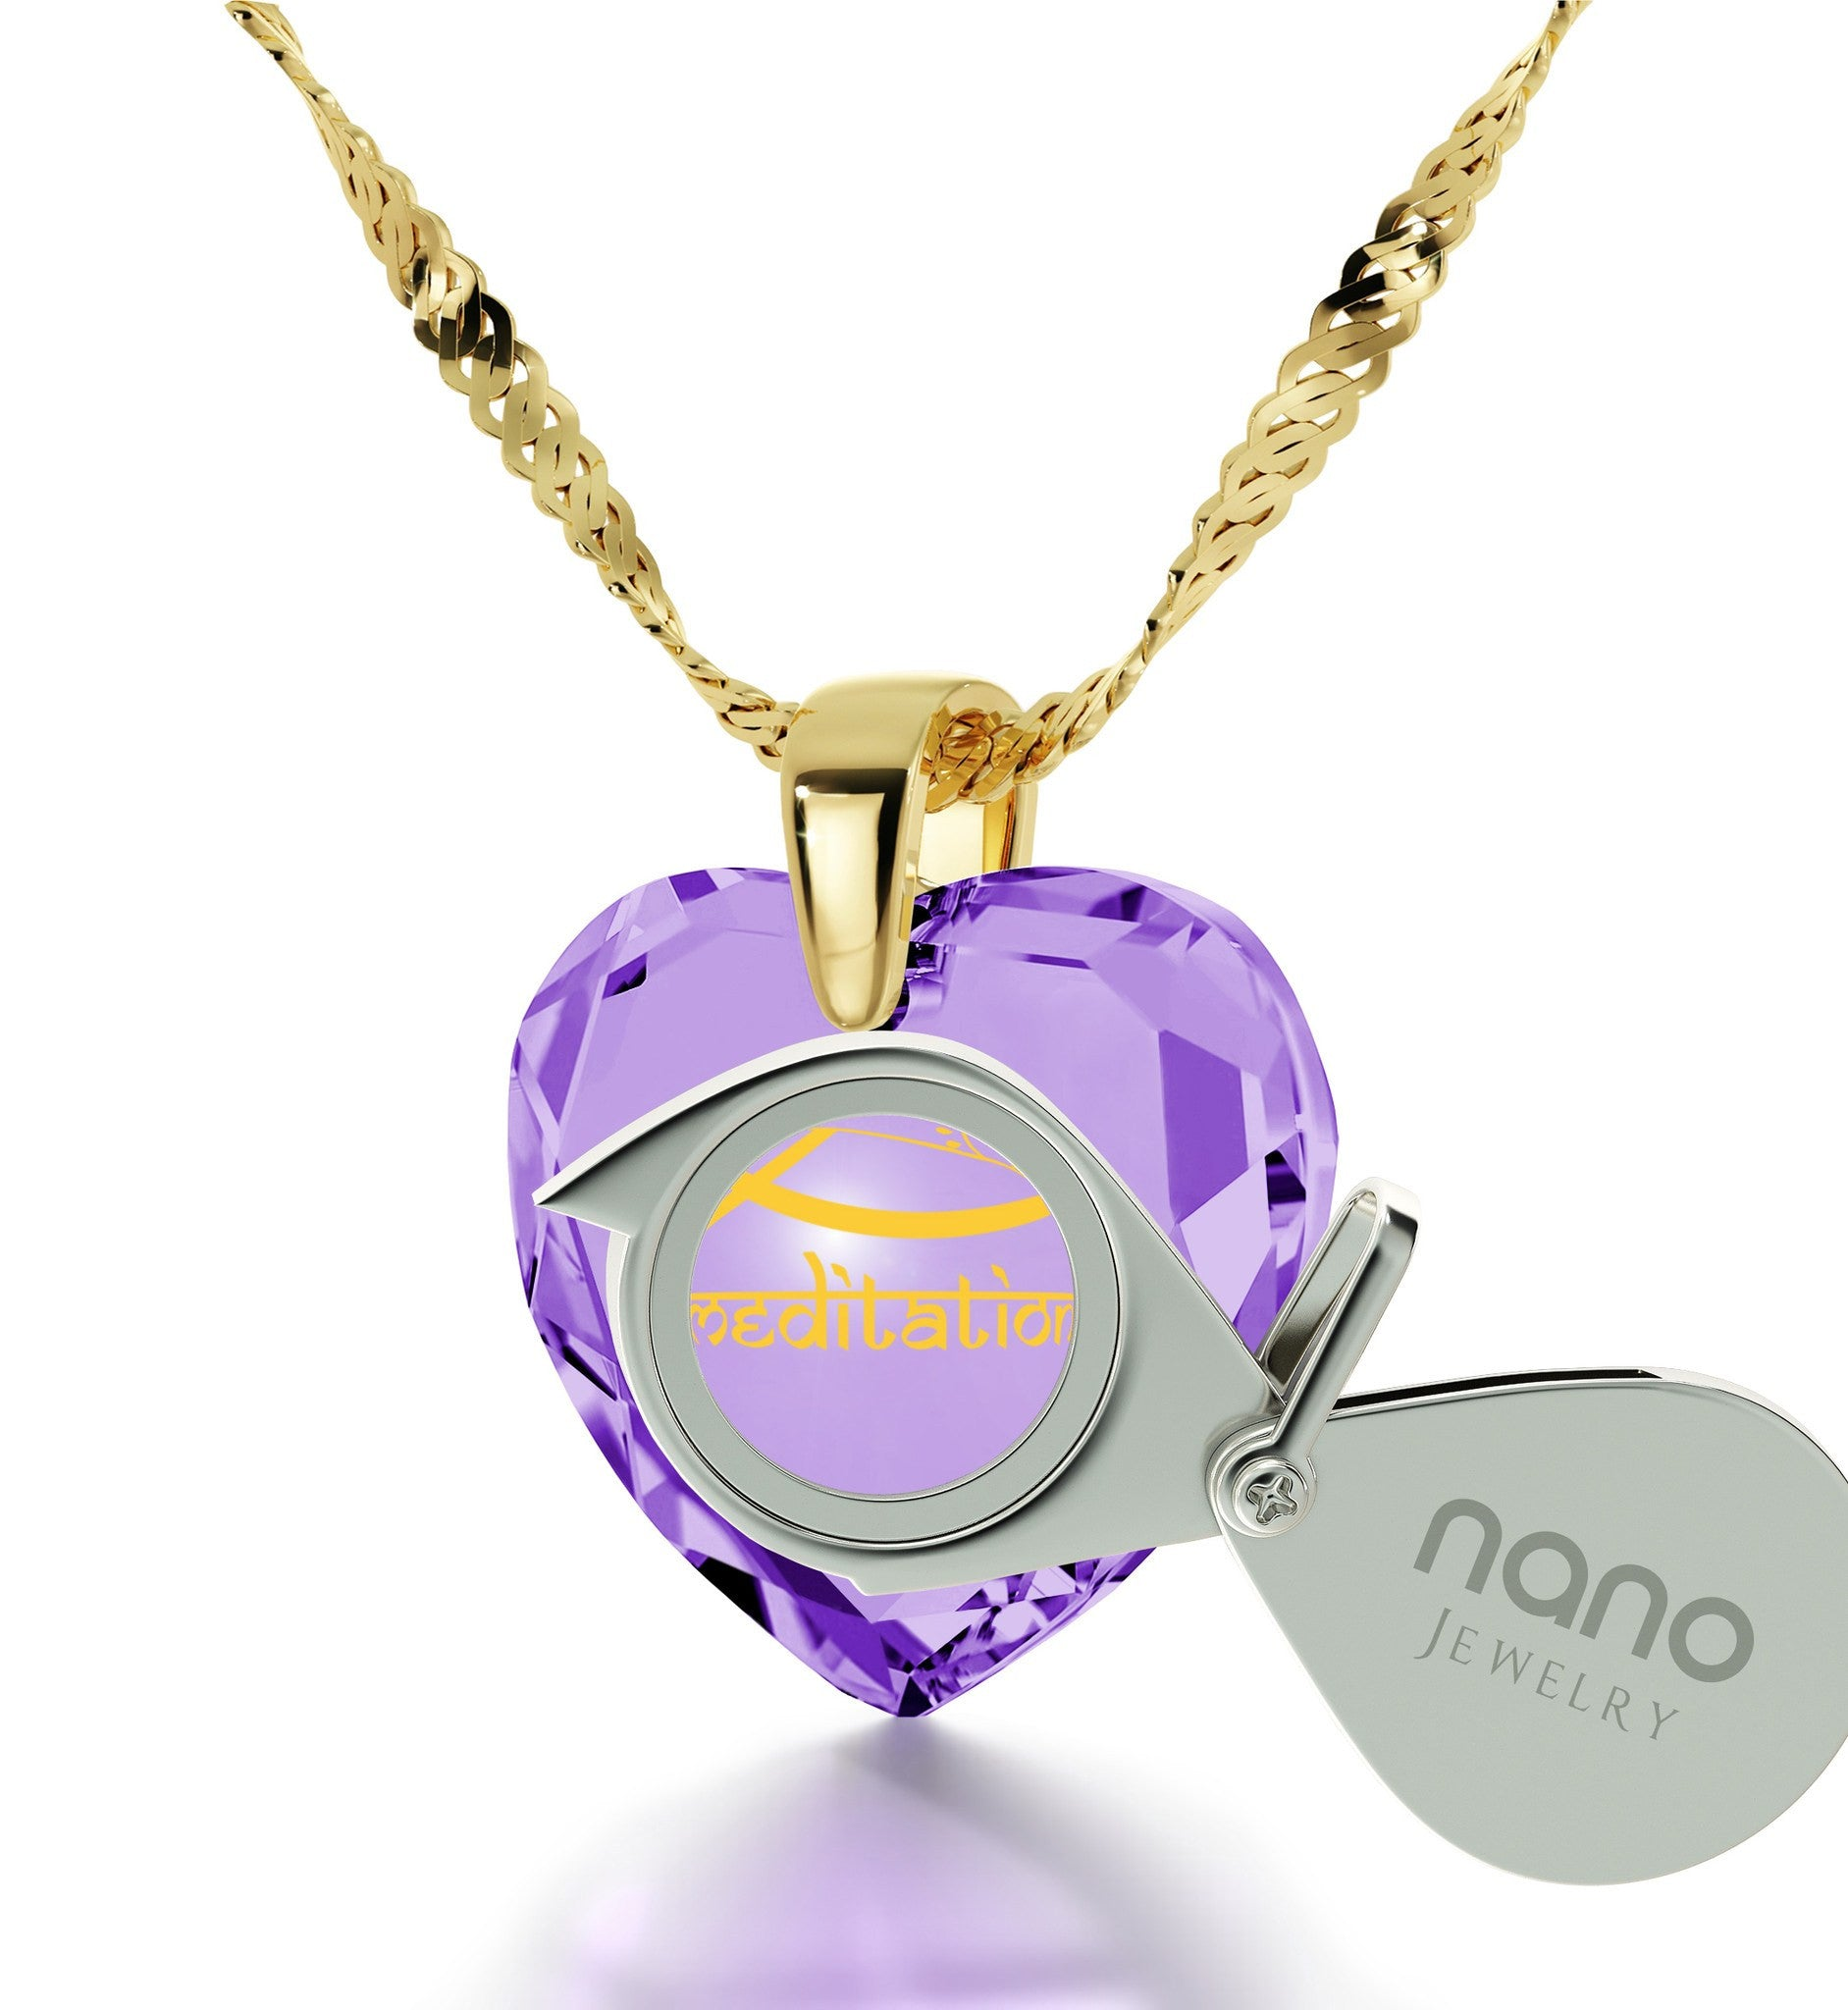 """""I Love Meditation"" Engraved in 24k, BuddhistStore with PurpleStone Necklaces, ReligiousJewelry for Women, NanoJewelry"""